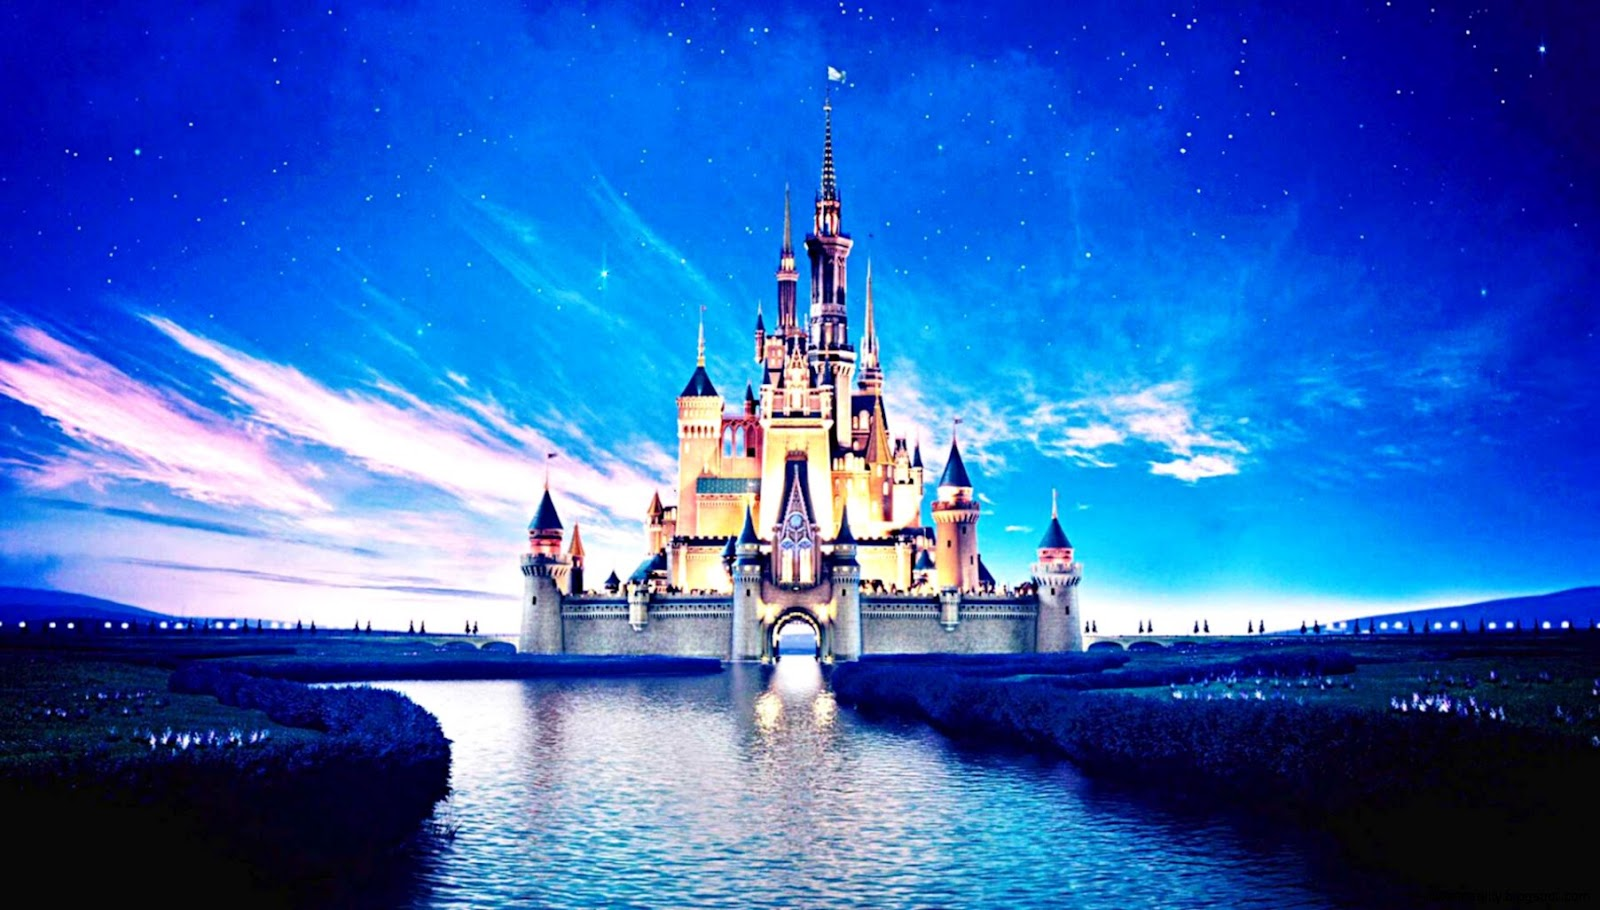 Disney Frozen Hd Wallpapers Wallpapers Quality